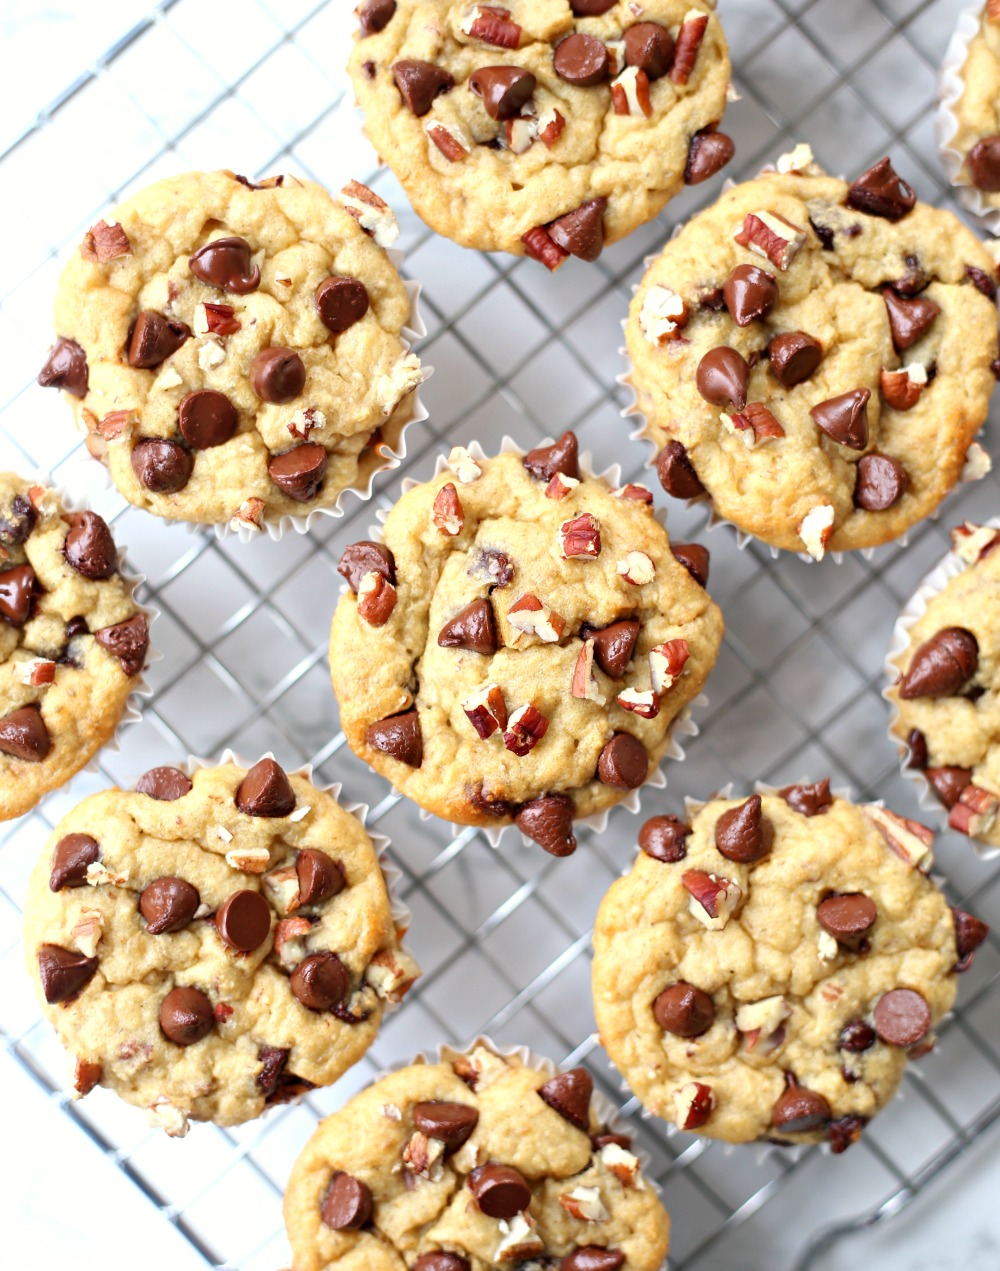 Banana Oatmeal Blender Muffins Recipe